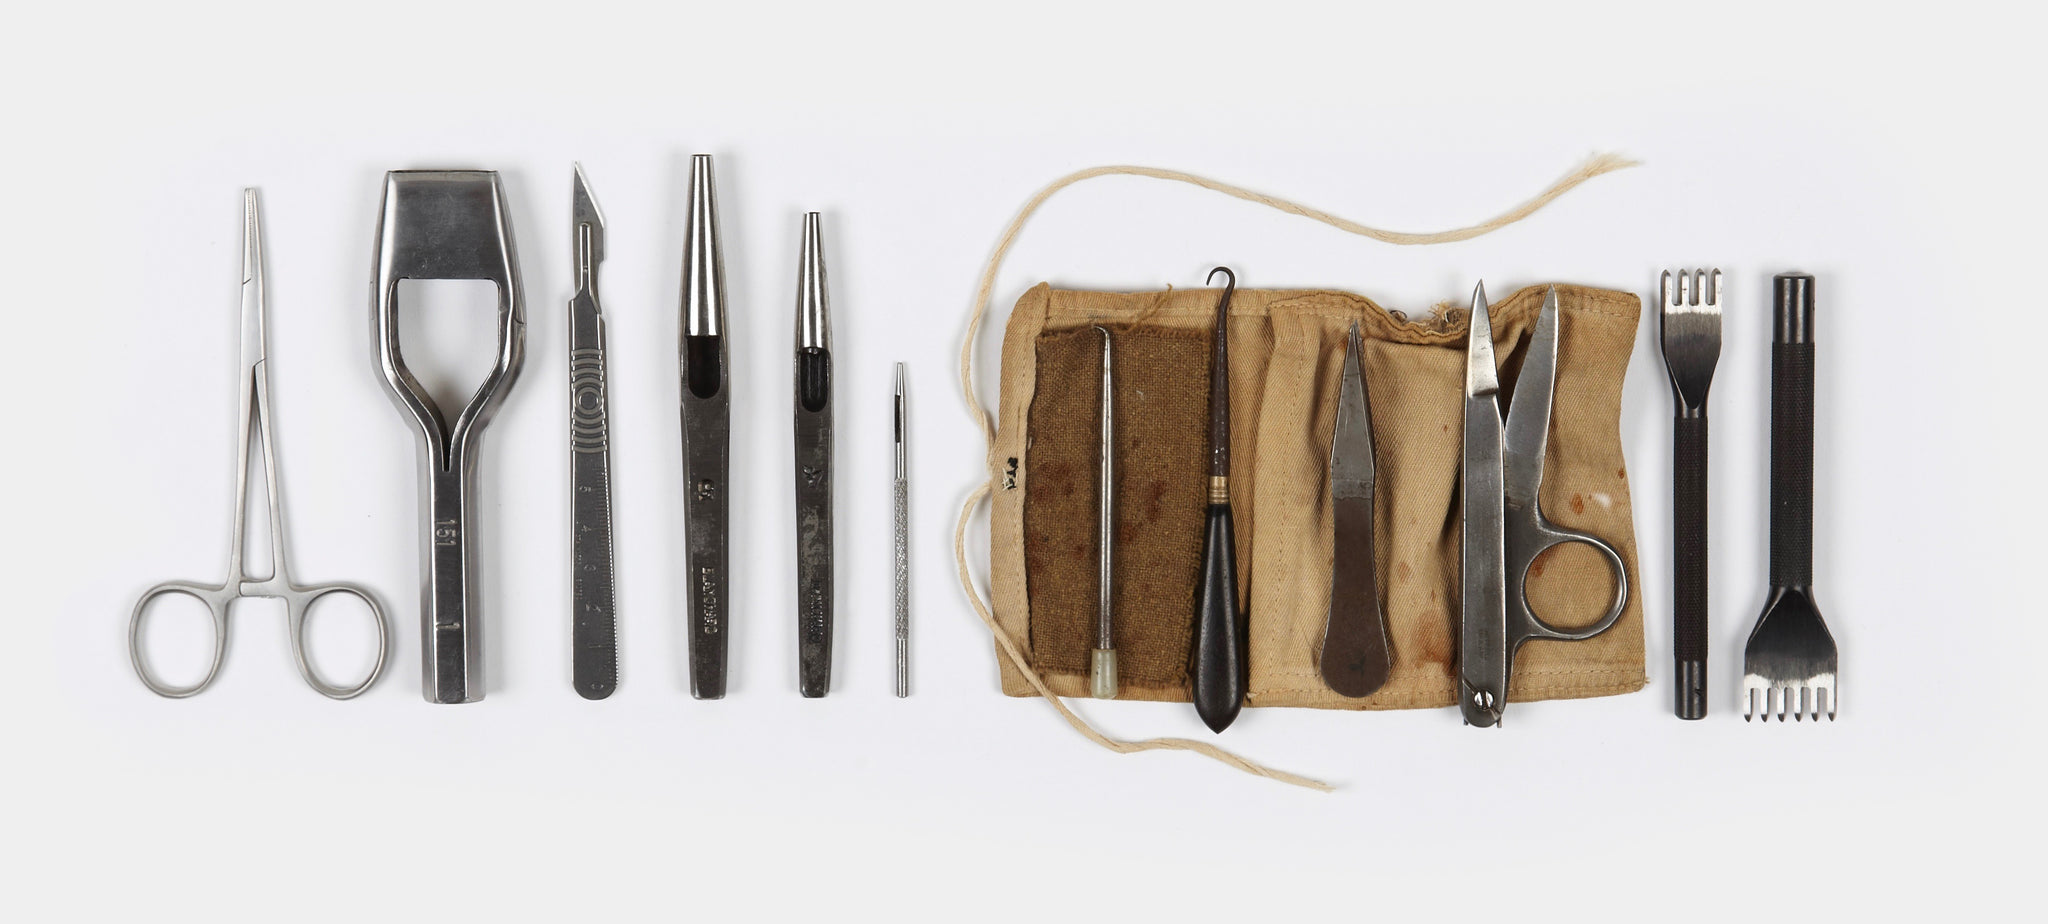 Tools and instruments for leather craftsmanship